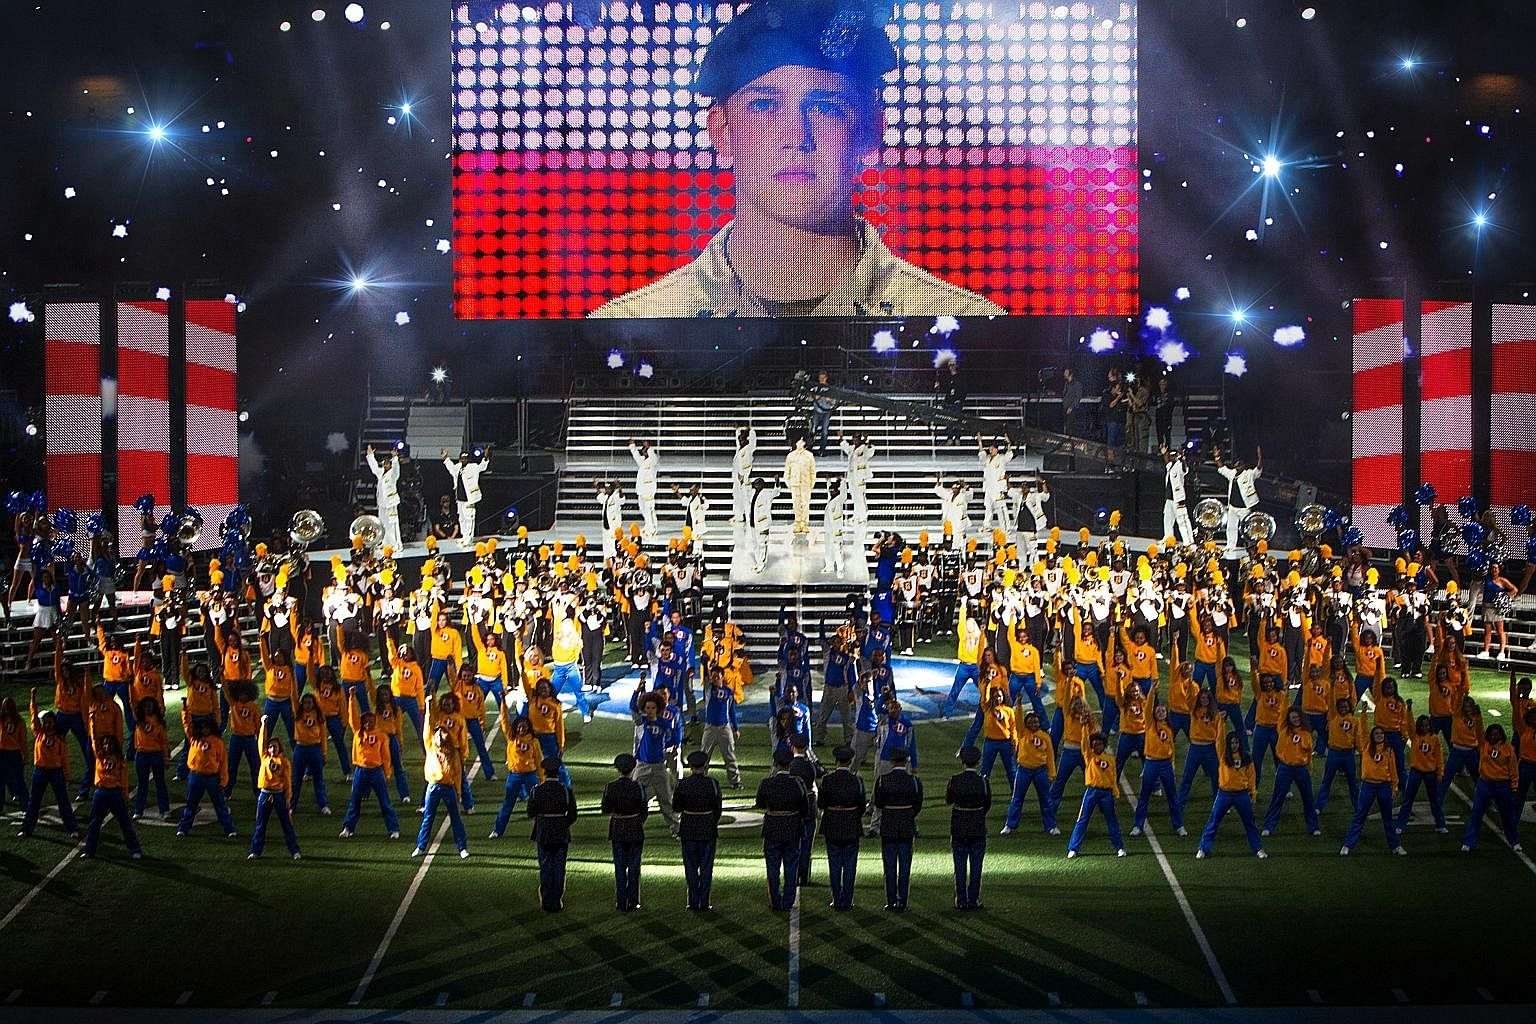 Billy Lynn's Long Halftime Walk was made in a groundbreaking format of a high frame rate of 120 frames per second, at 4K and in 3D.